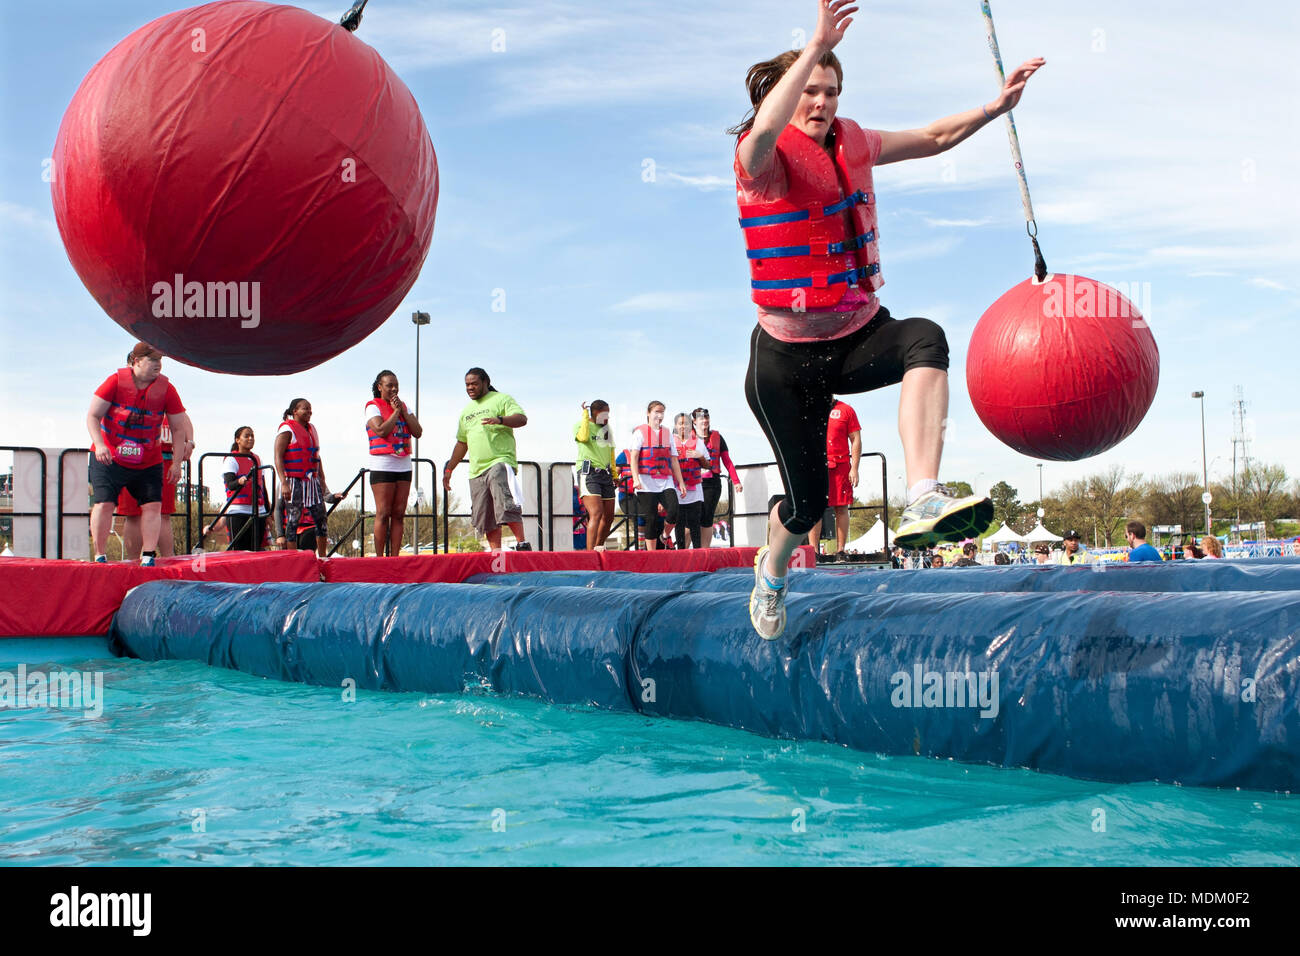 A woman slips and falls into the water running through the wrecking balls event, at the Ridiculous Obstacle Course on April 5, 2014 in Atlanta, GA. - Stock Image